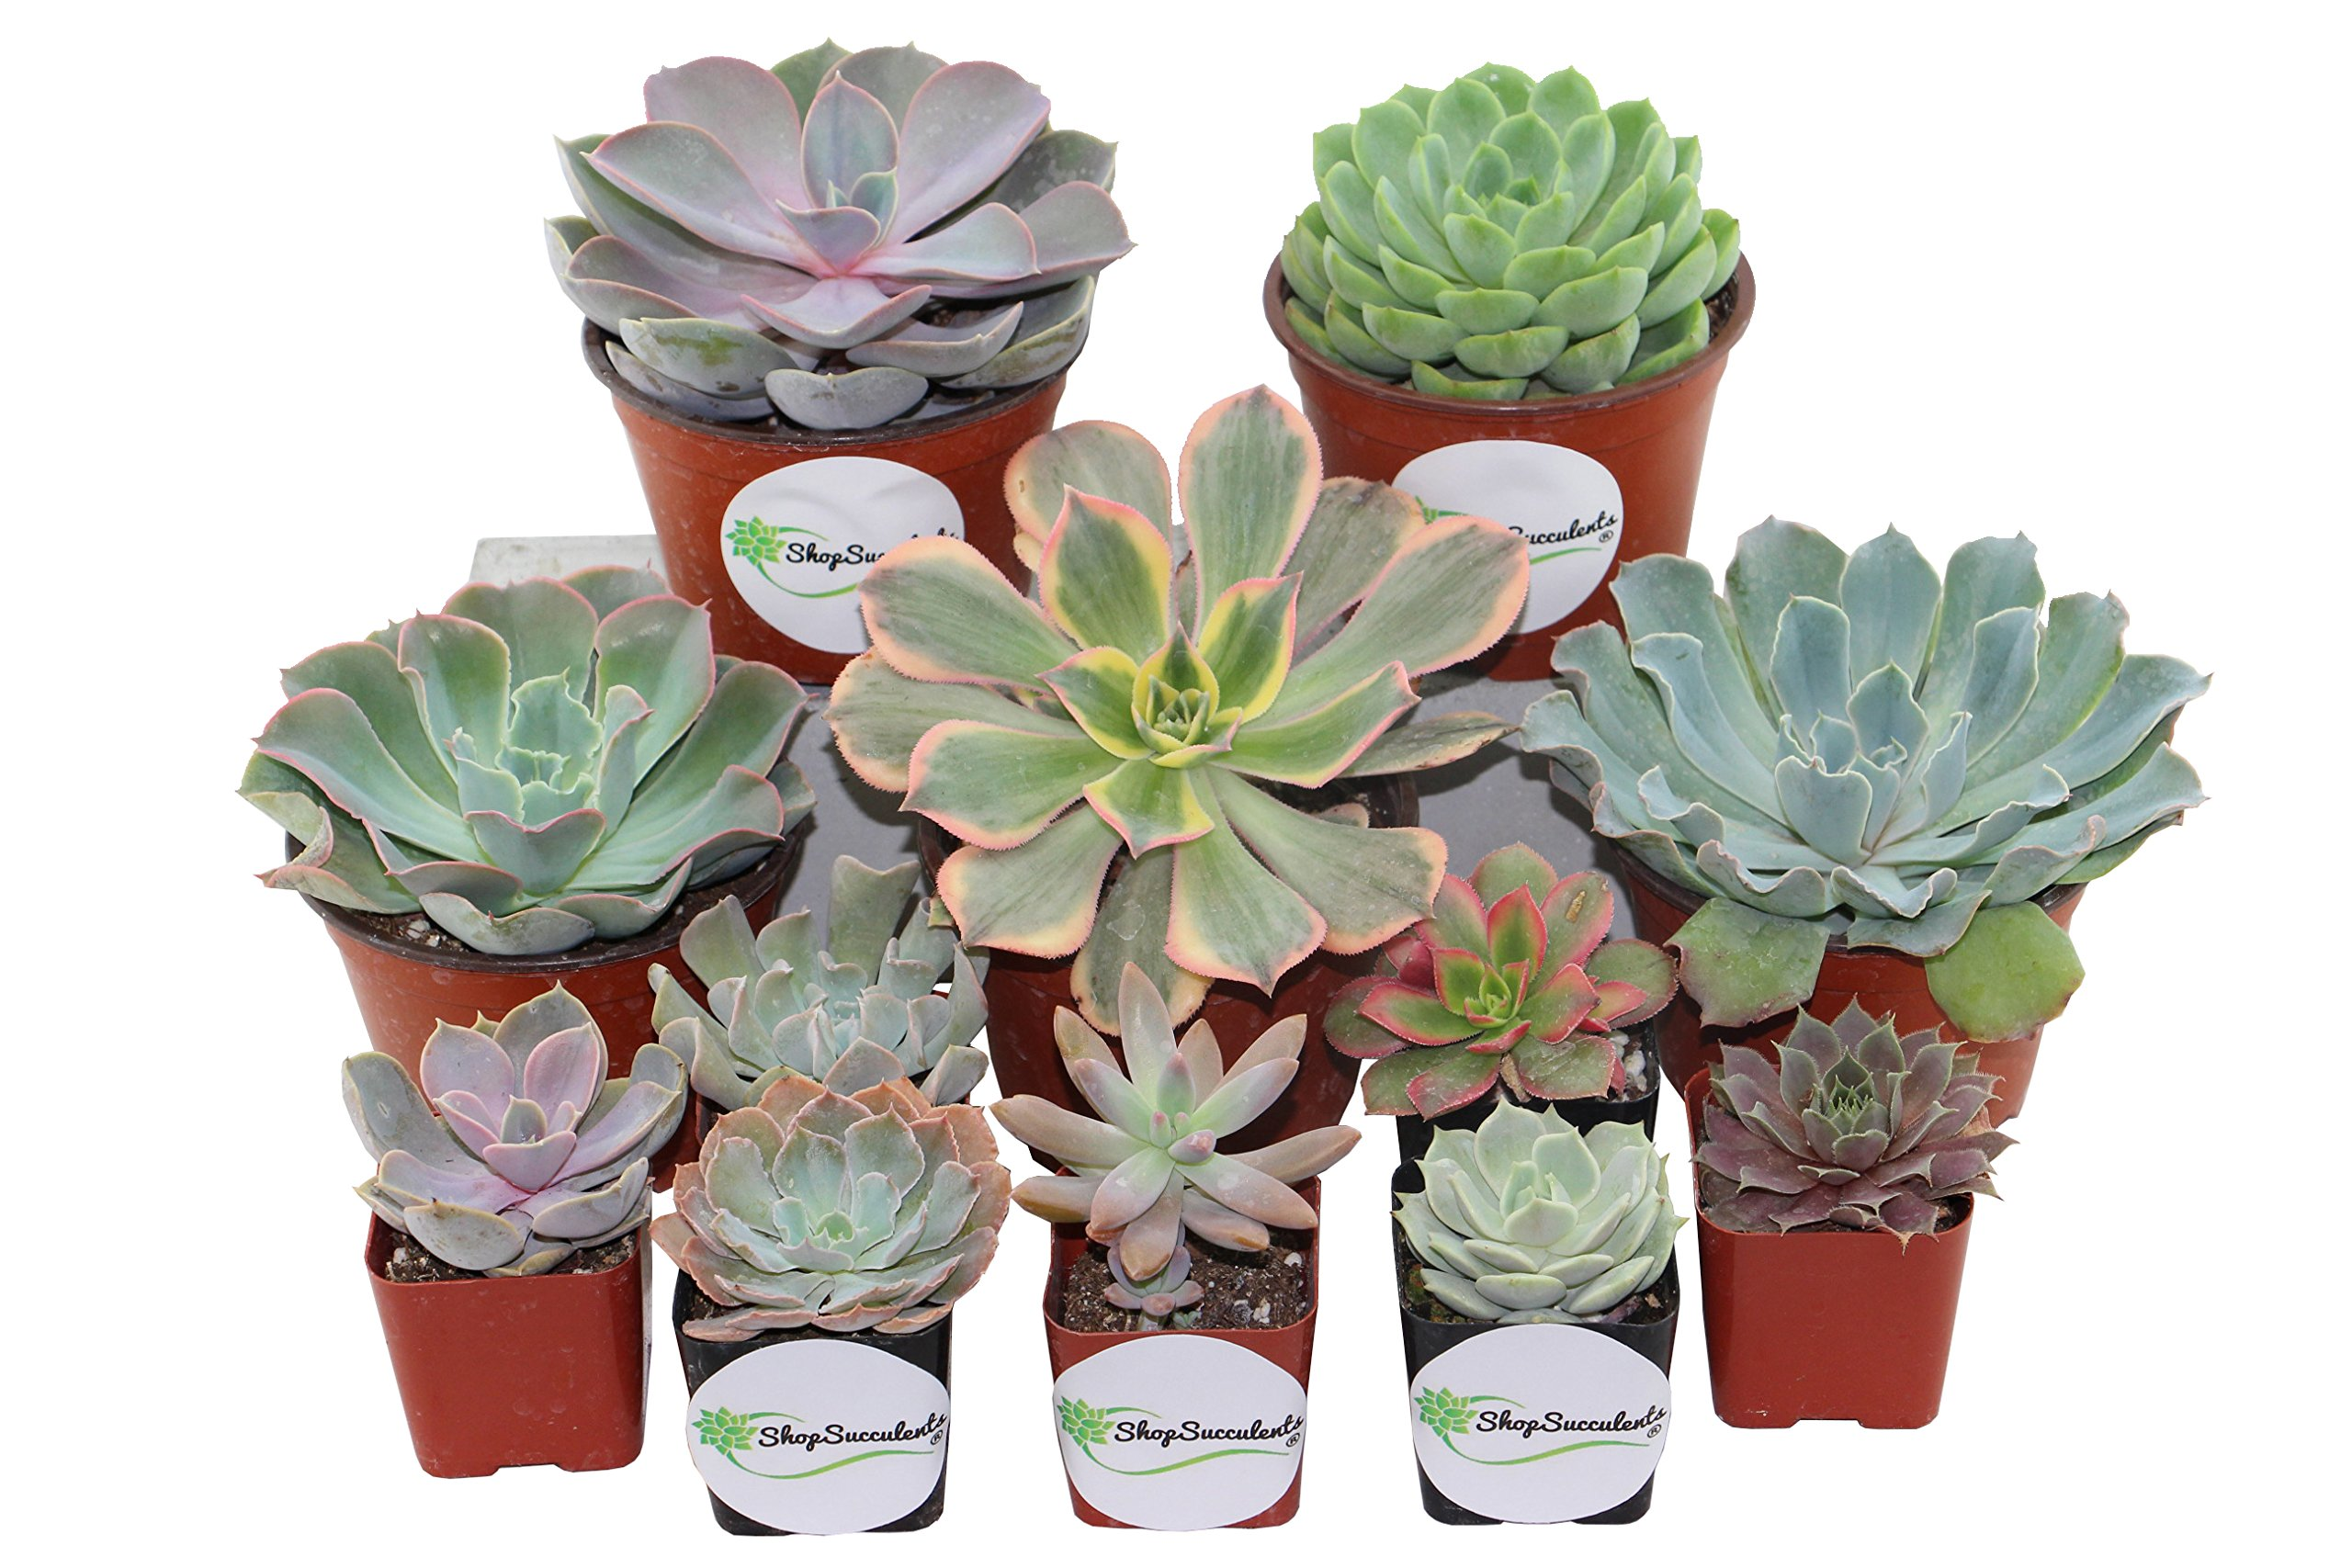 Shop Succulents Rosette Succulents 2'' and 4'' Wedding Combo Pack (72, 64x2'' plants 8x4'' plants)